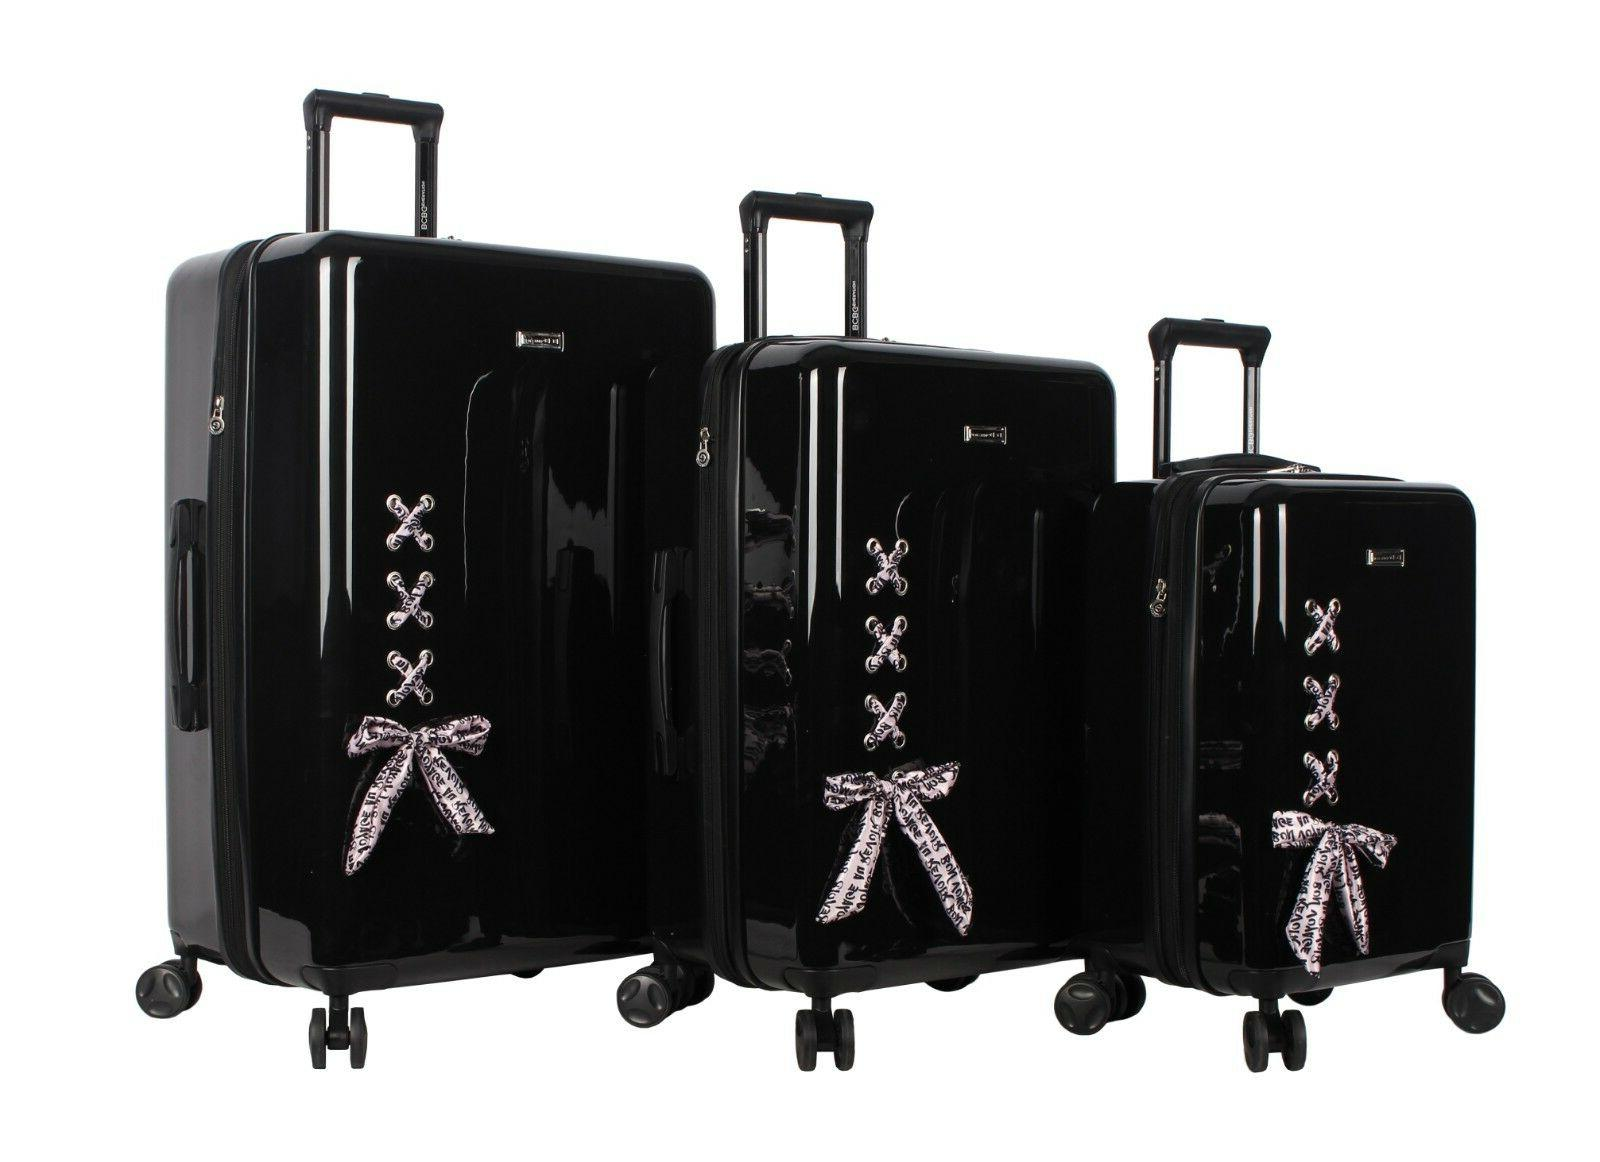 bcbg luggage hardside 3 piece suitcase set